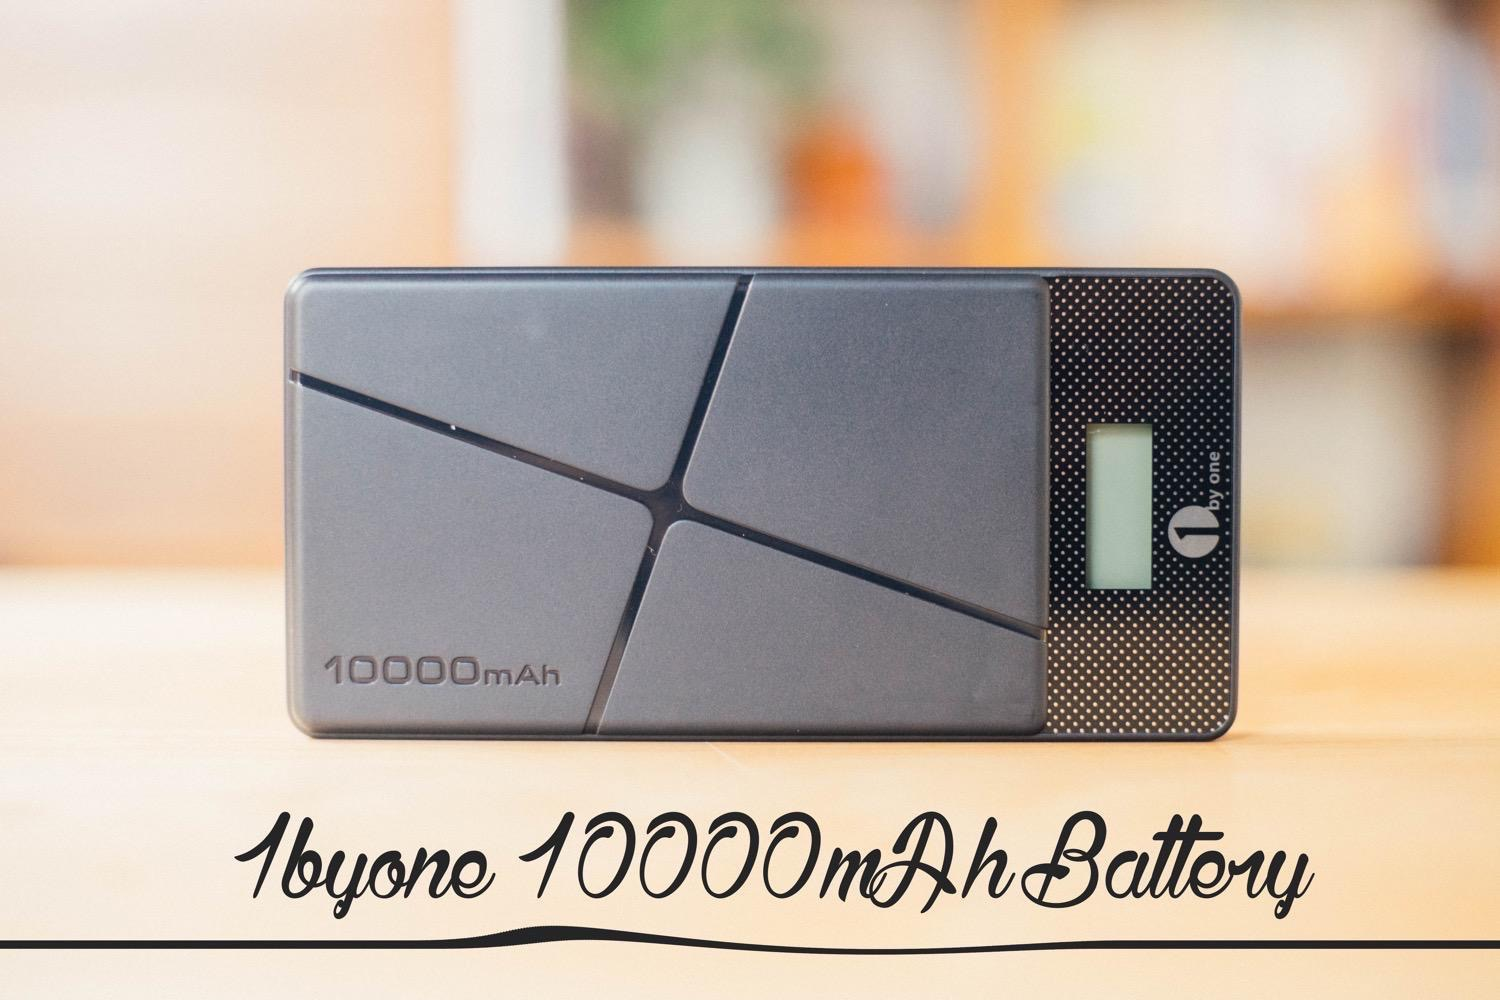 1byone bettery 1000mAh 3